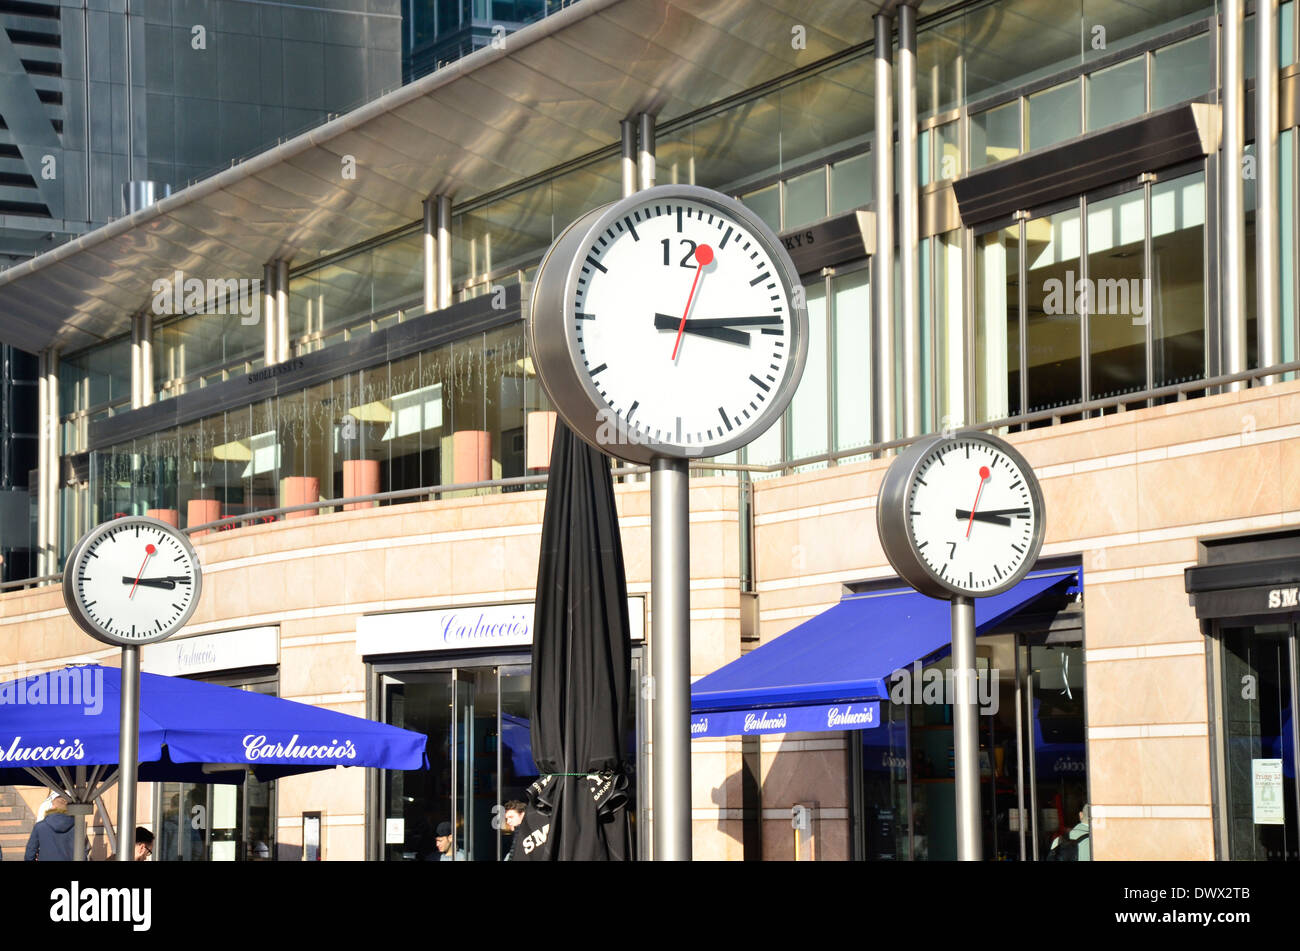 Clocks outside Carluccio's restaurant in Canary Wharf, Docklands, East London, England, UK - Stock Image